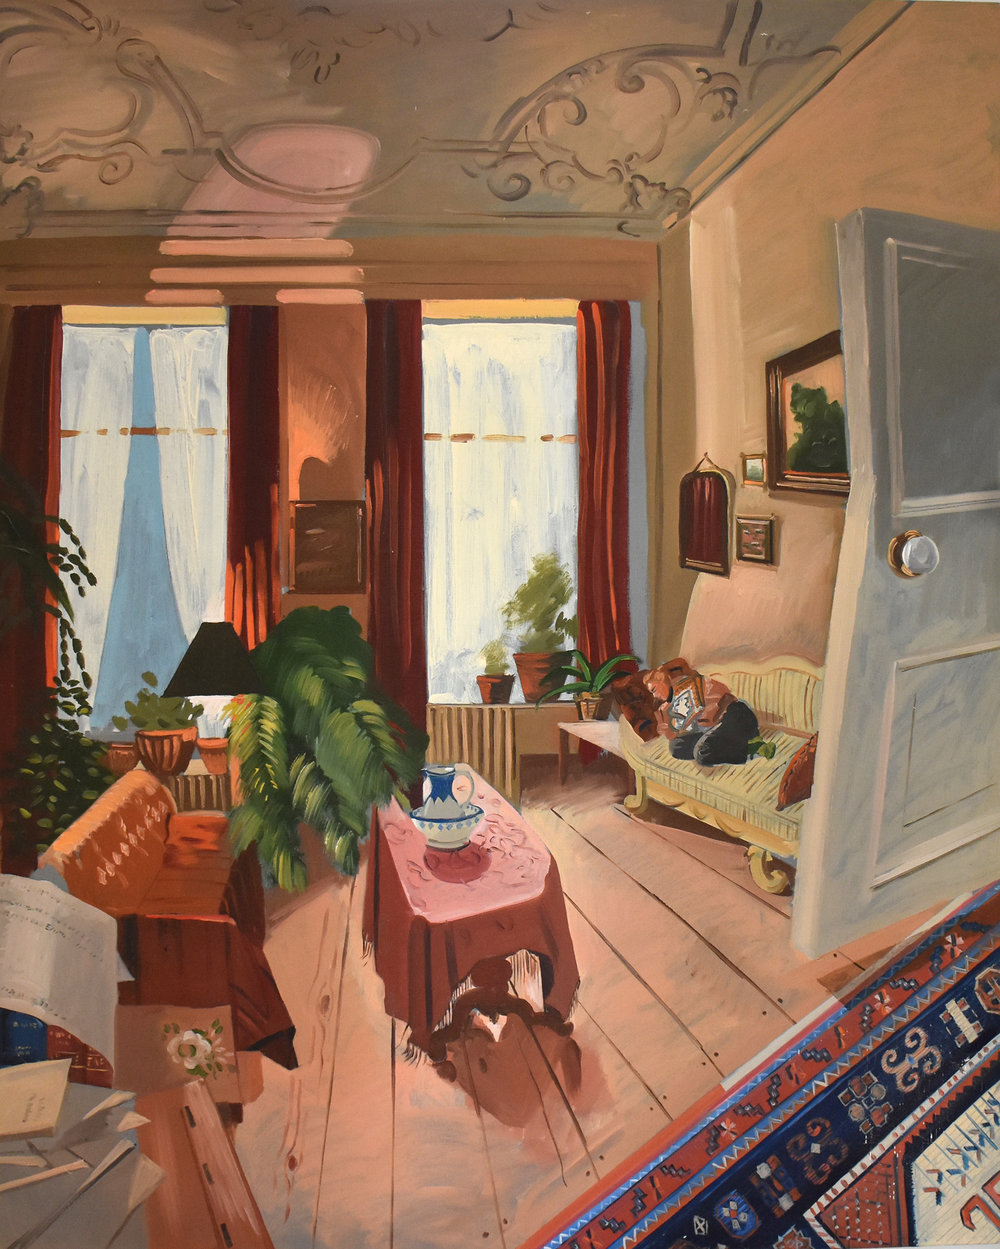 site-1999 maarssen interior-karen sleeping 42x40 in..jpg